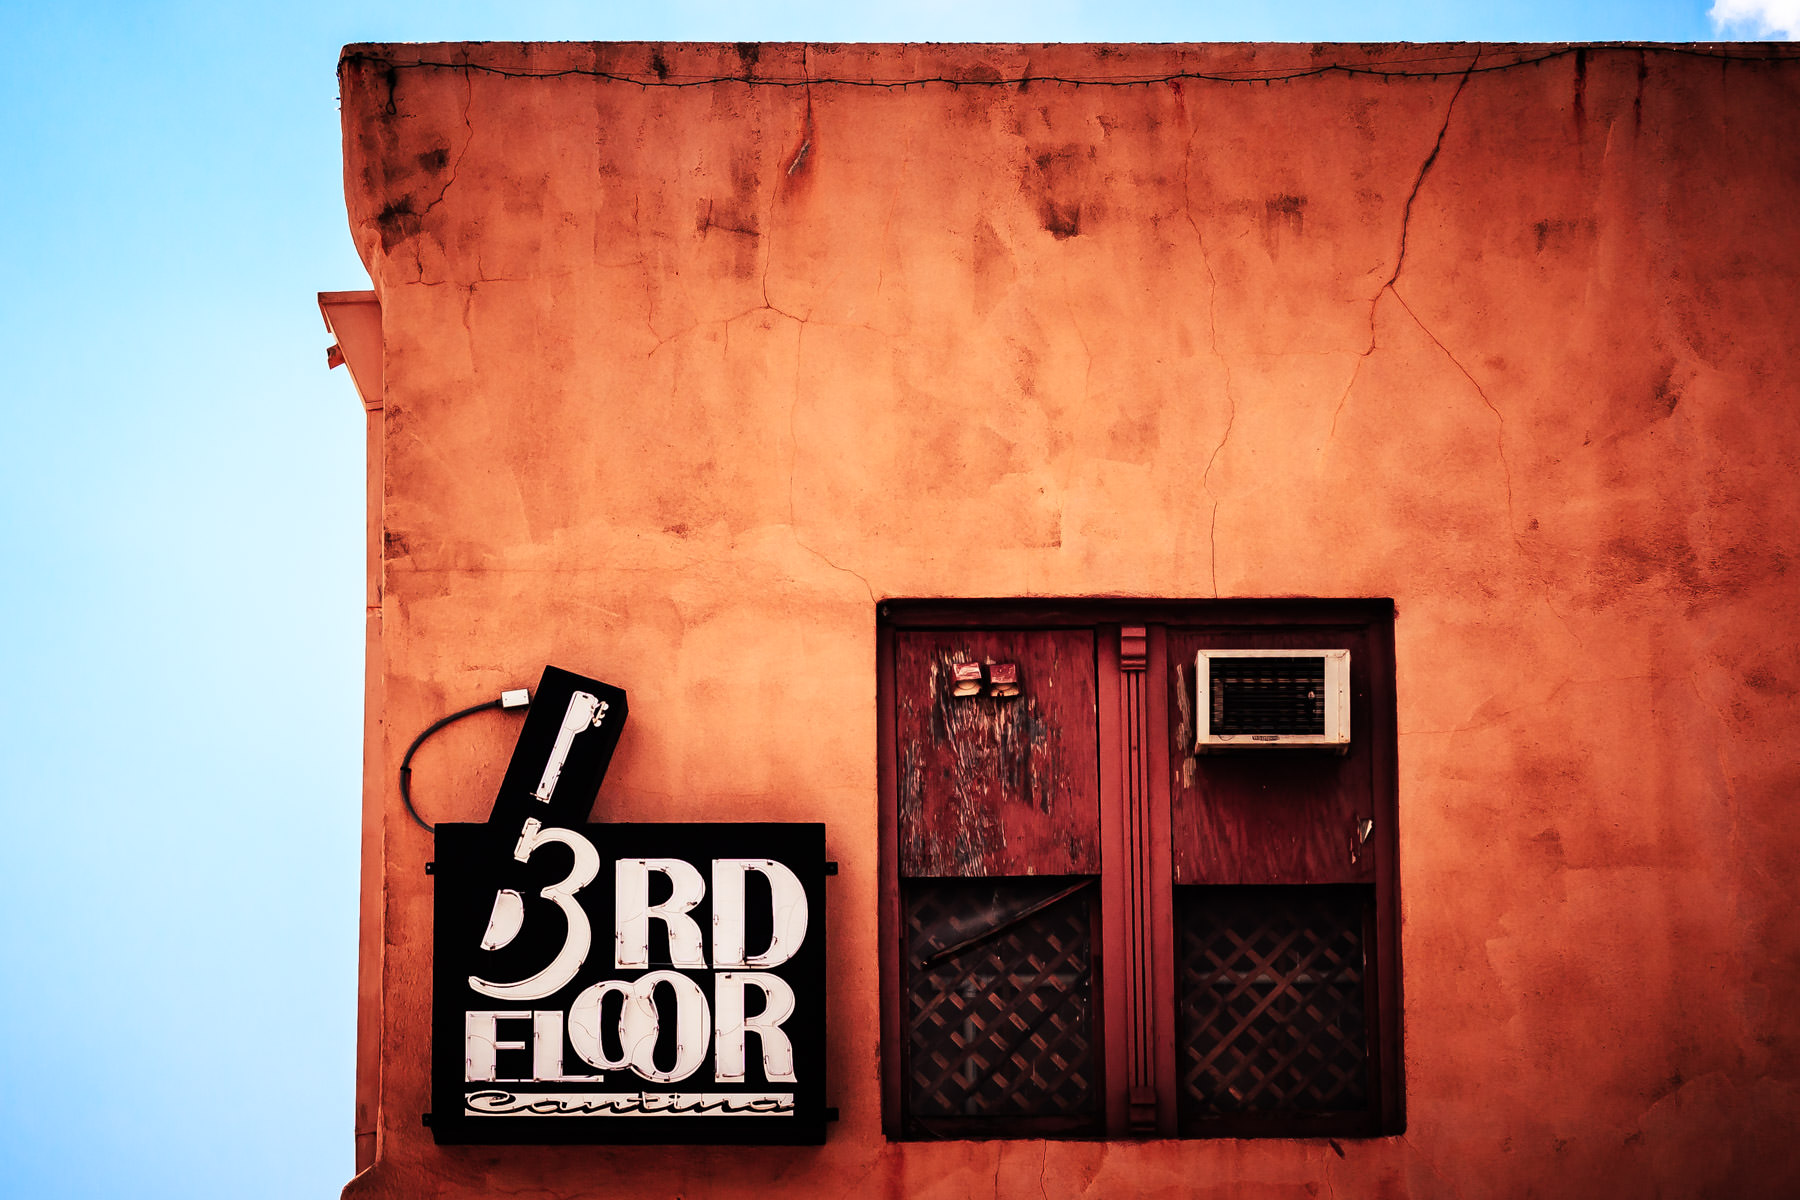 The 3rd Floor Cantina—a live music venue—in Downtown Bryan, Texas.